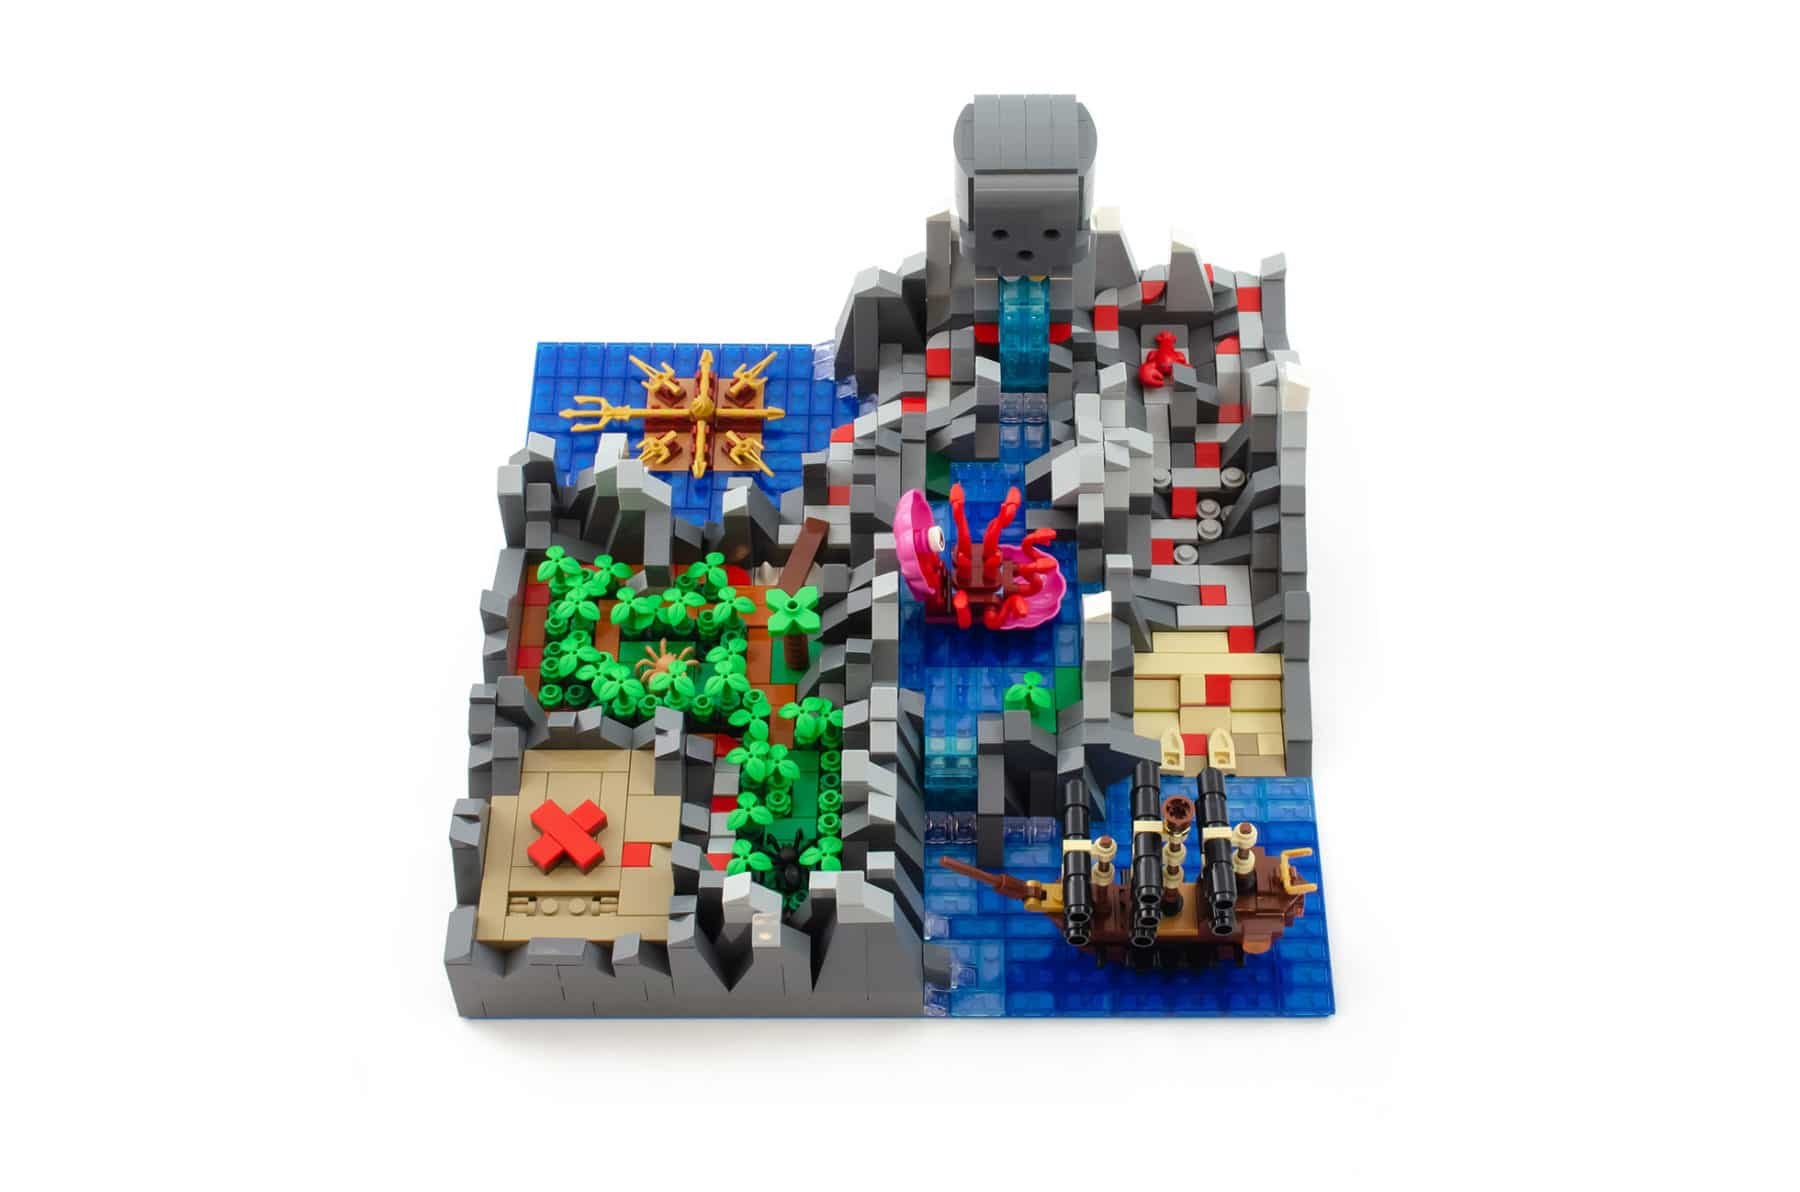 Bricklink AFOL Designer Program: Isle of Peril